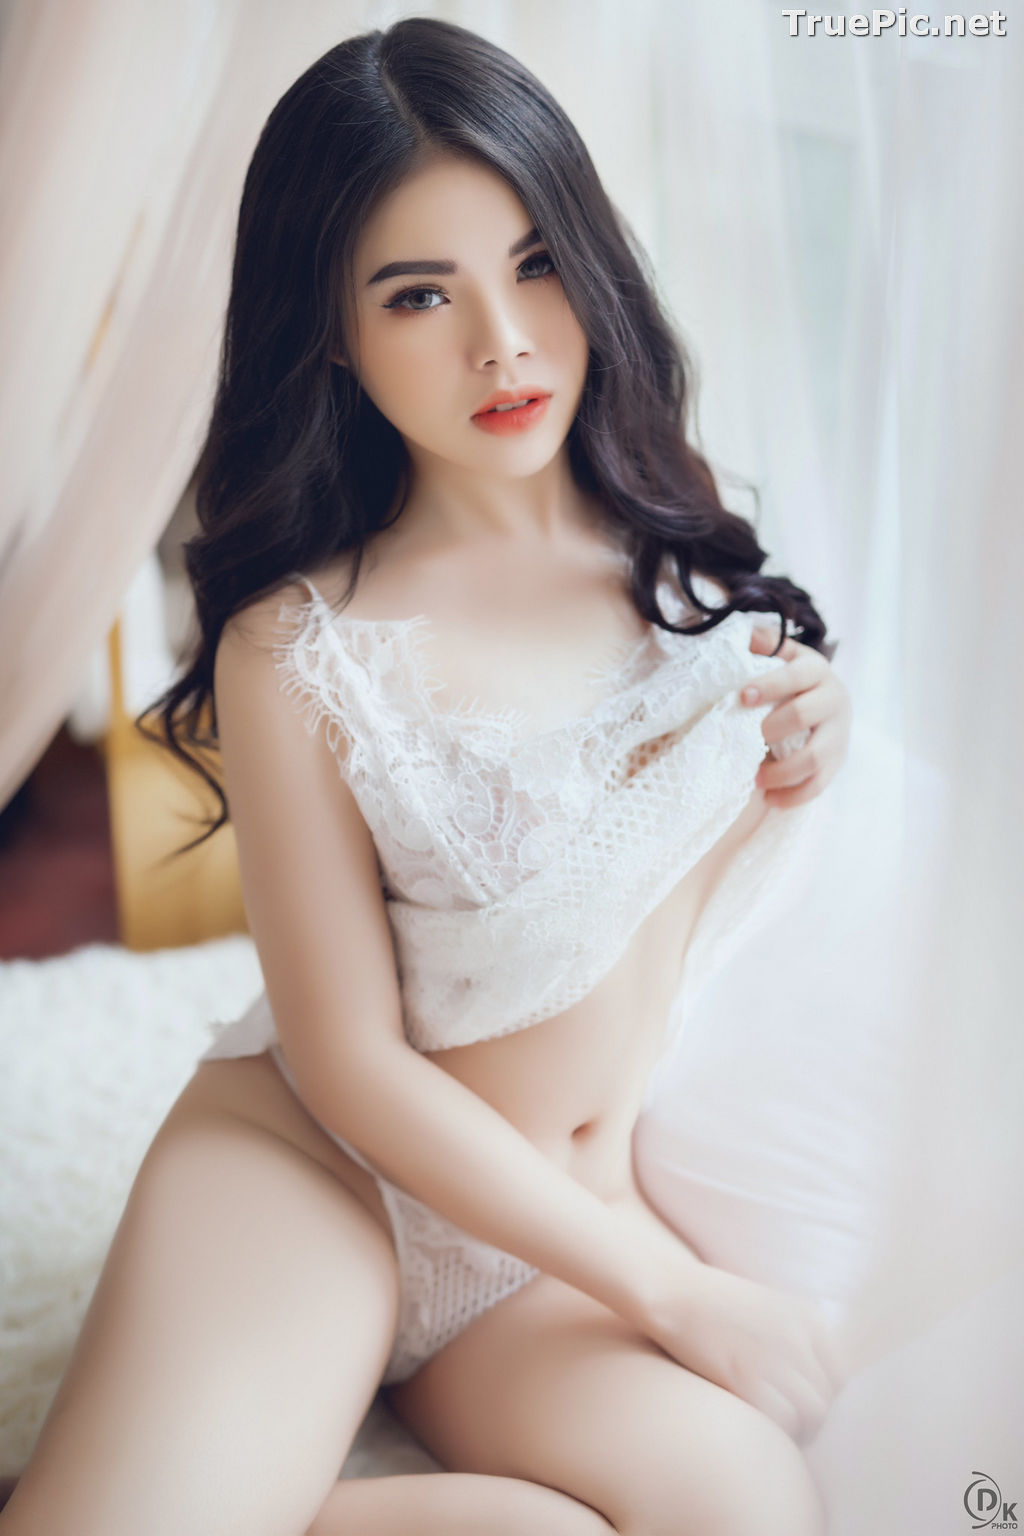 Image The Beauty of Vietnamese Girls – Photo Collection 2020 (#9) - TruePic.net - Picture-8